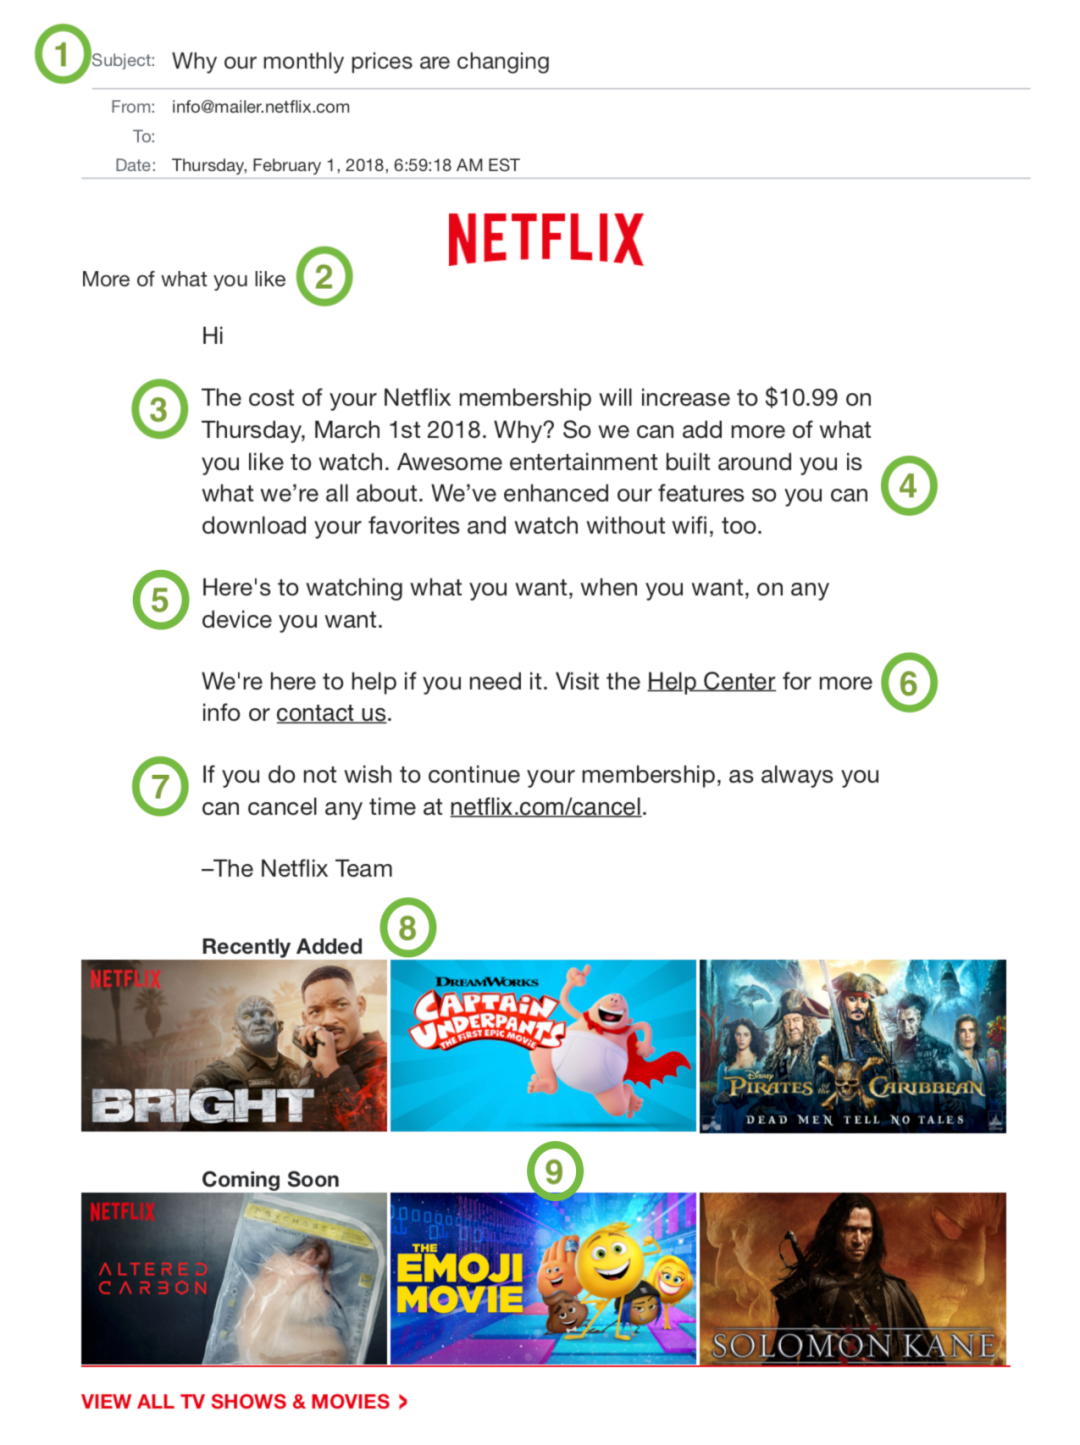 Netflix Price Change Email Anatomy